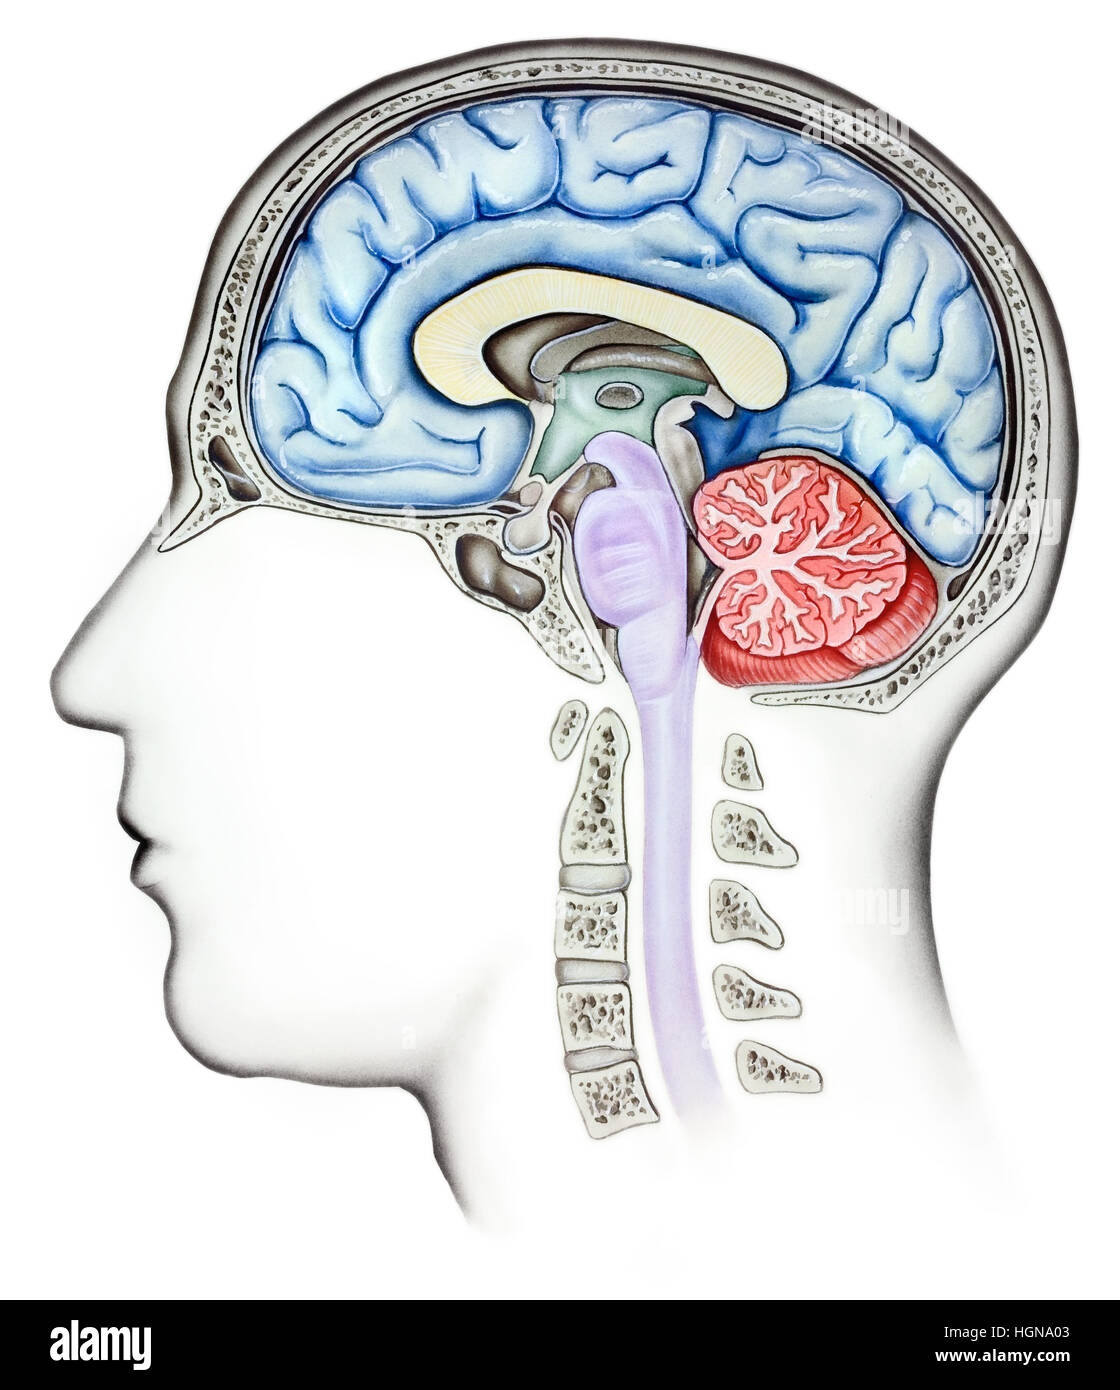 Anatomy Of A Human Brain Cutaway Side View Shown Are The Skull